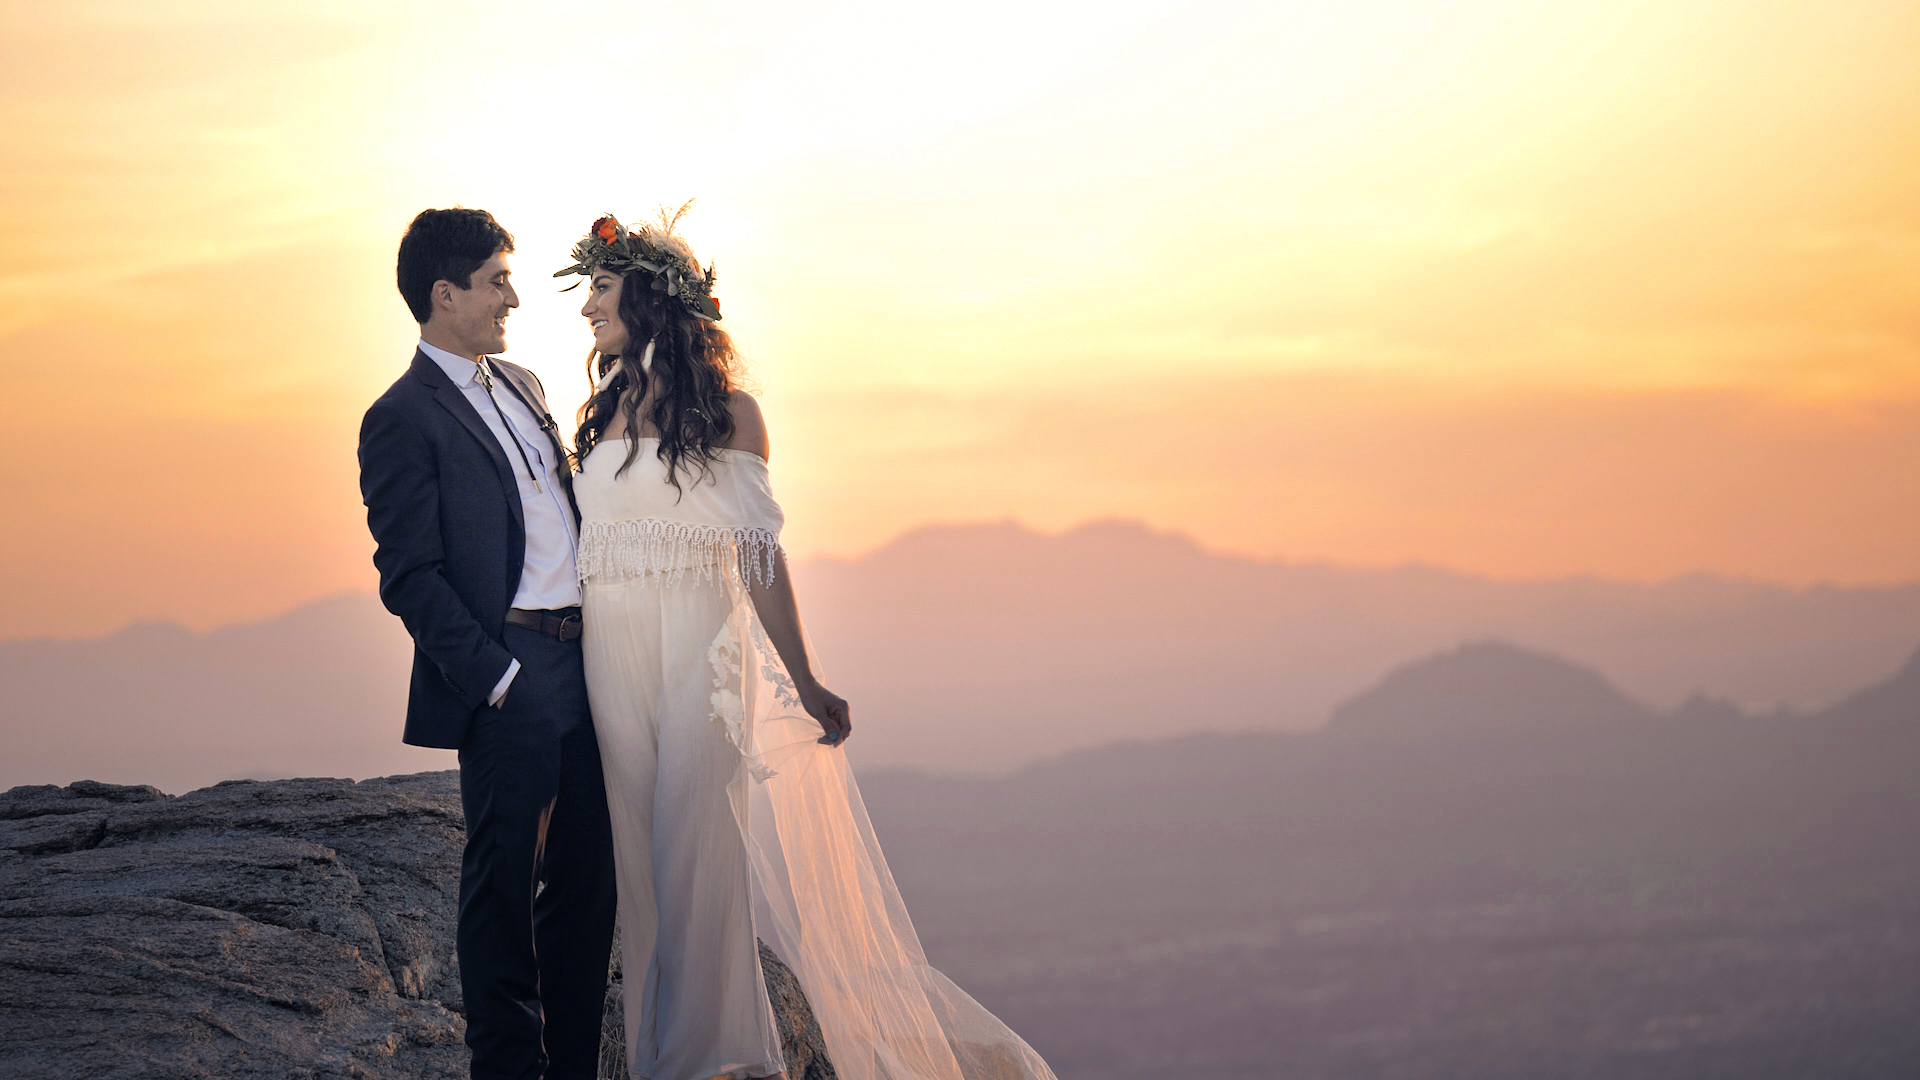 Chloe + Morgan | Tucson, Arizona | Mt. Lemmon